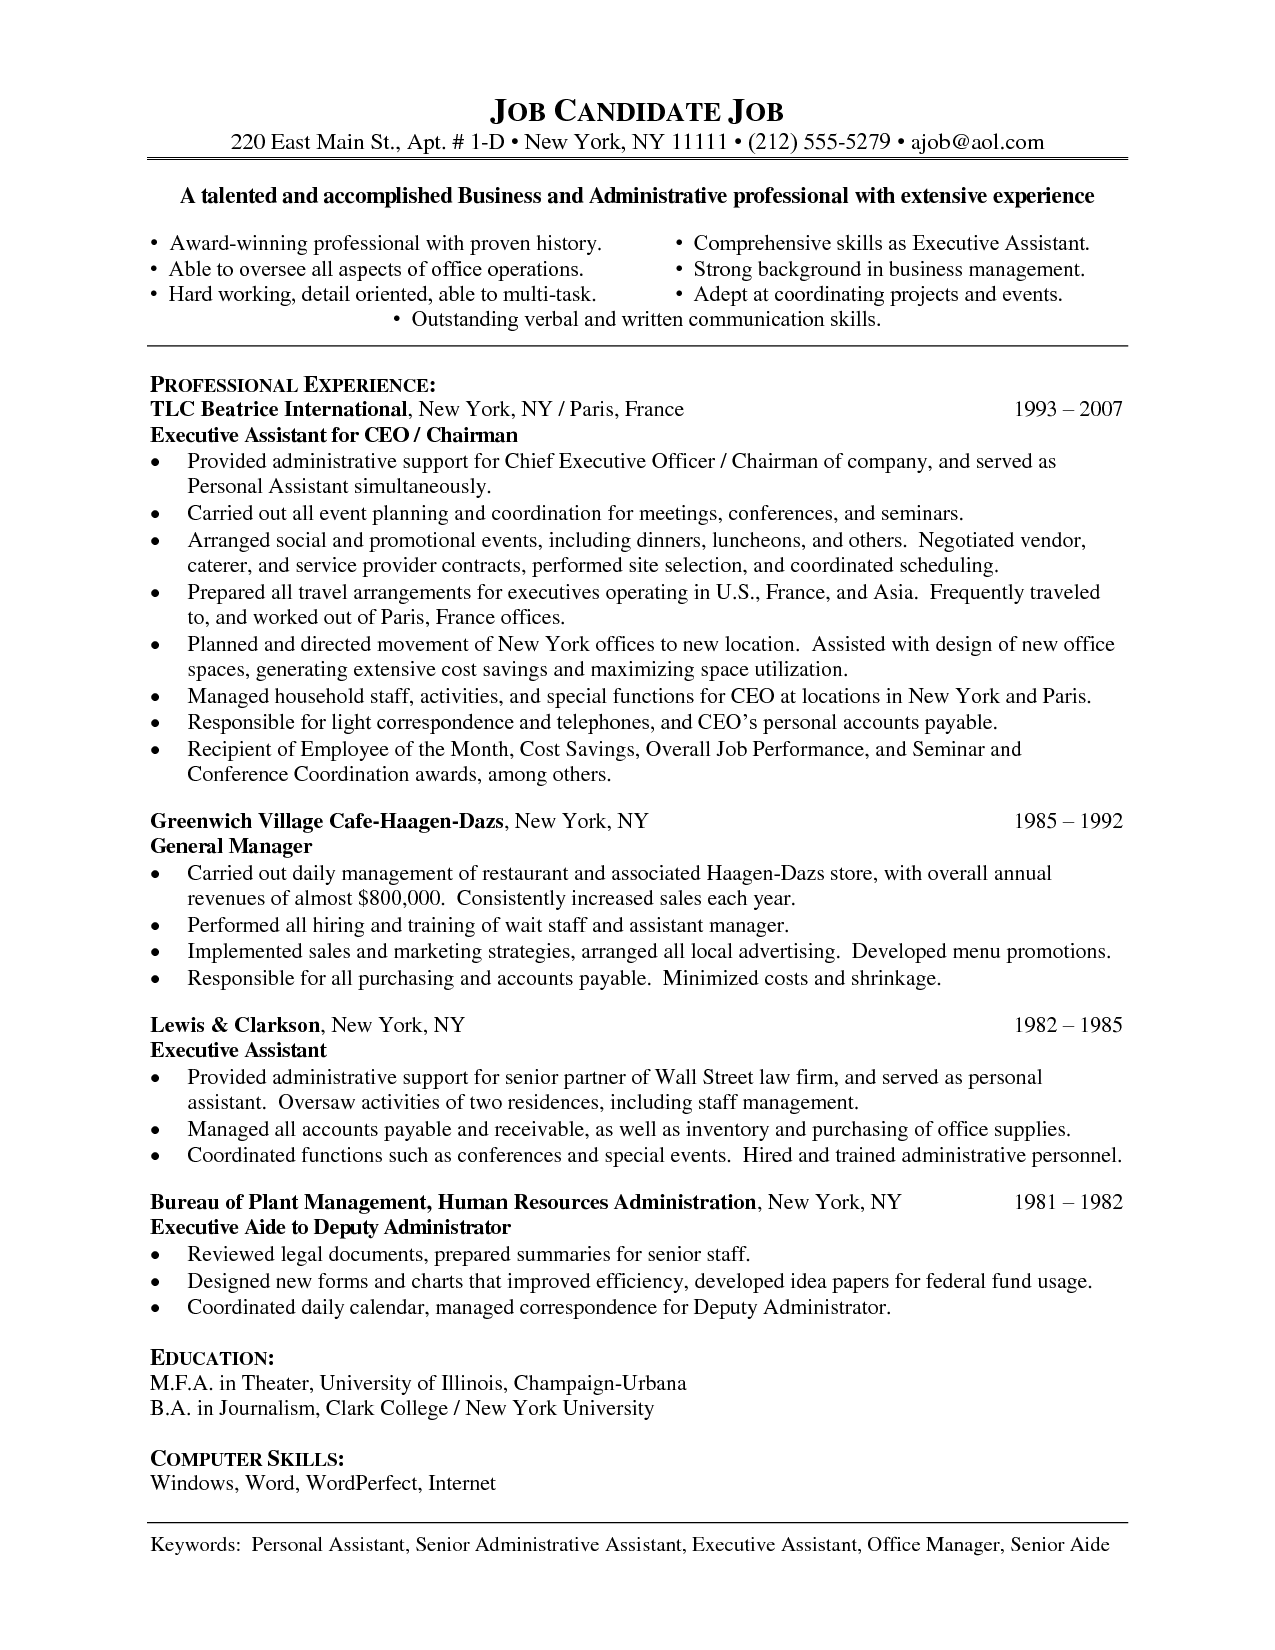 Legal Assistant Resume Awesome Administrative Functional Resume  Google Search  Administrative